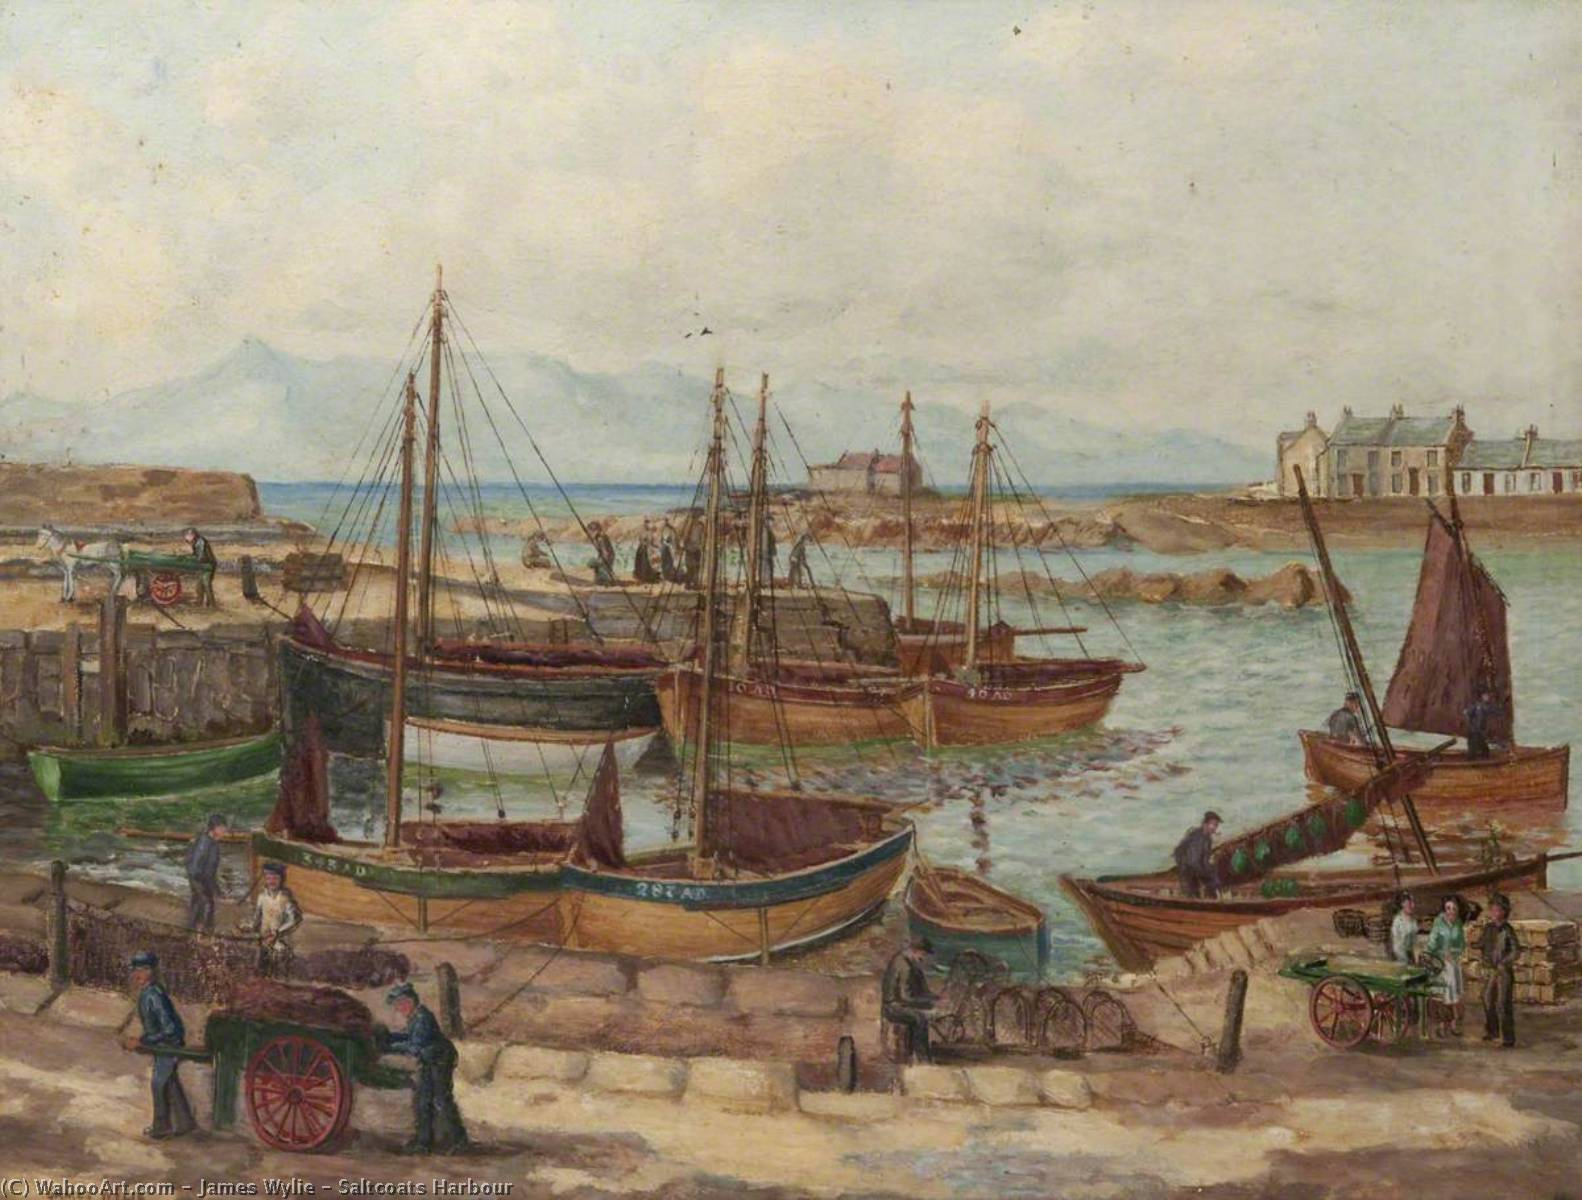 Order Paintings Reproductions | Saltcoats Harbour by James Wylie | WahooArt.com